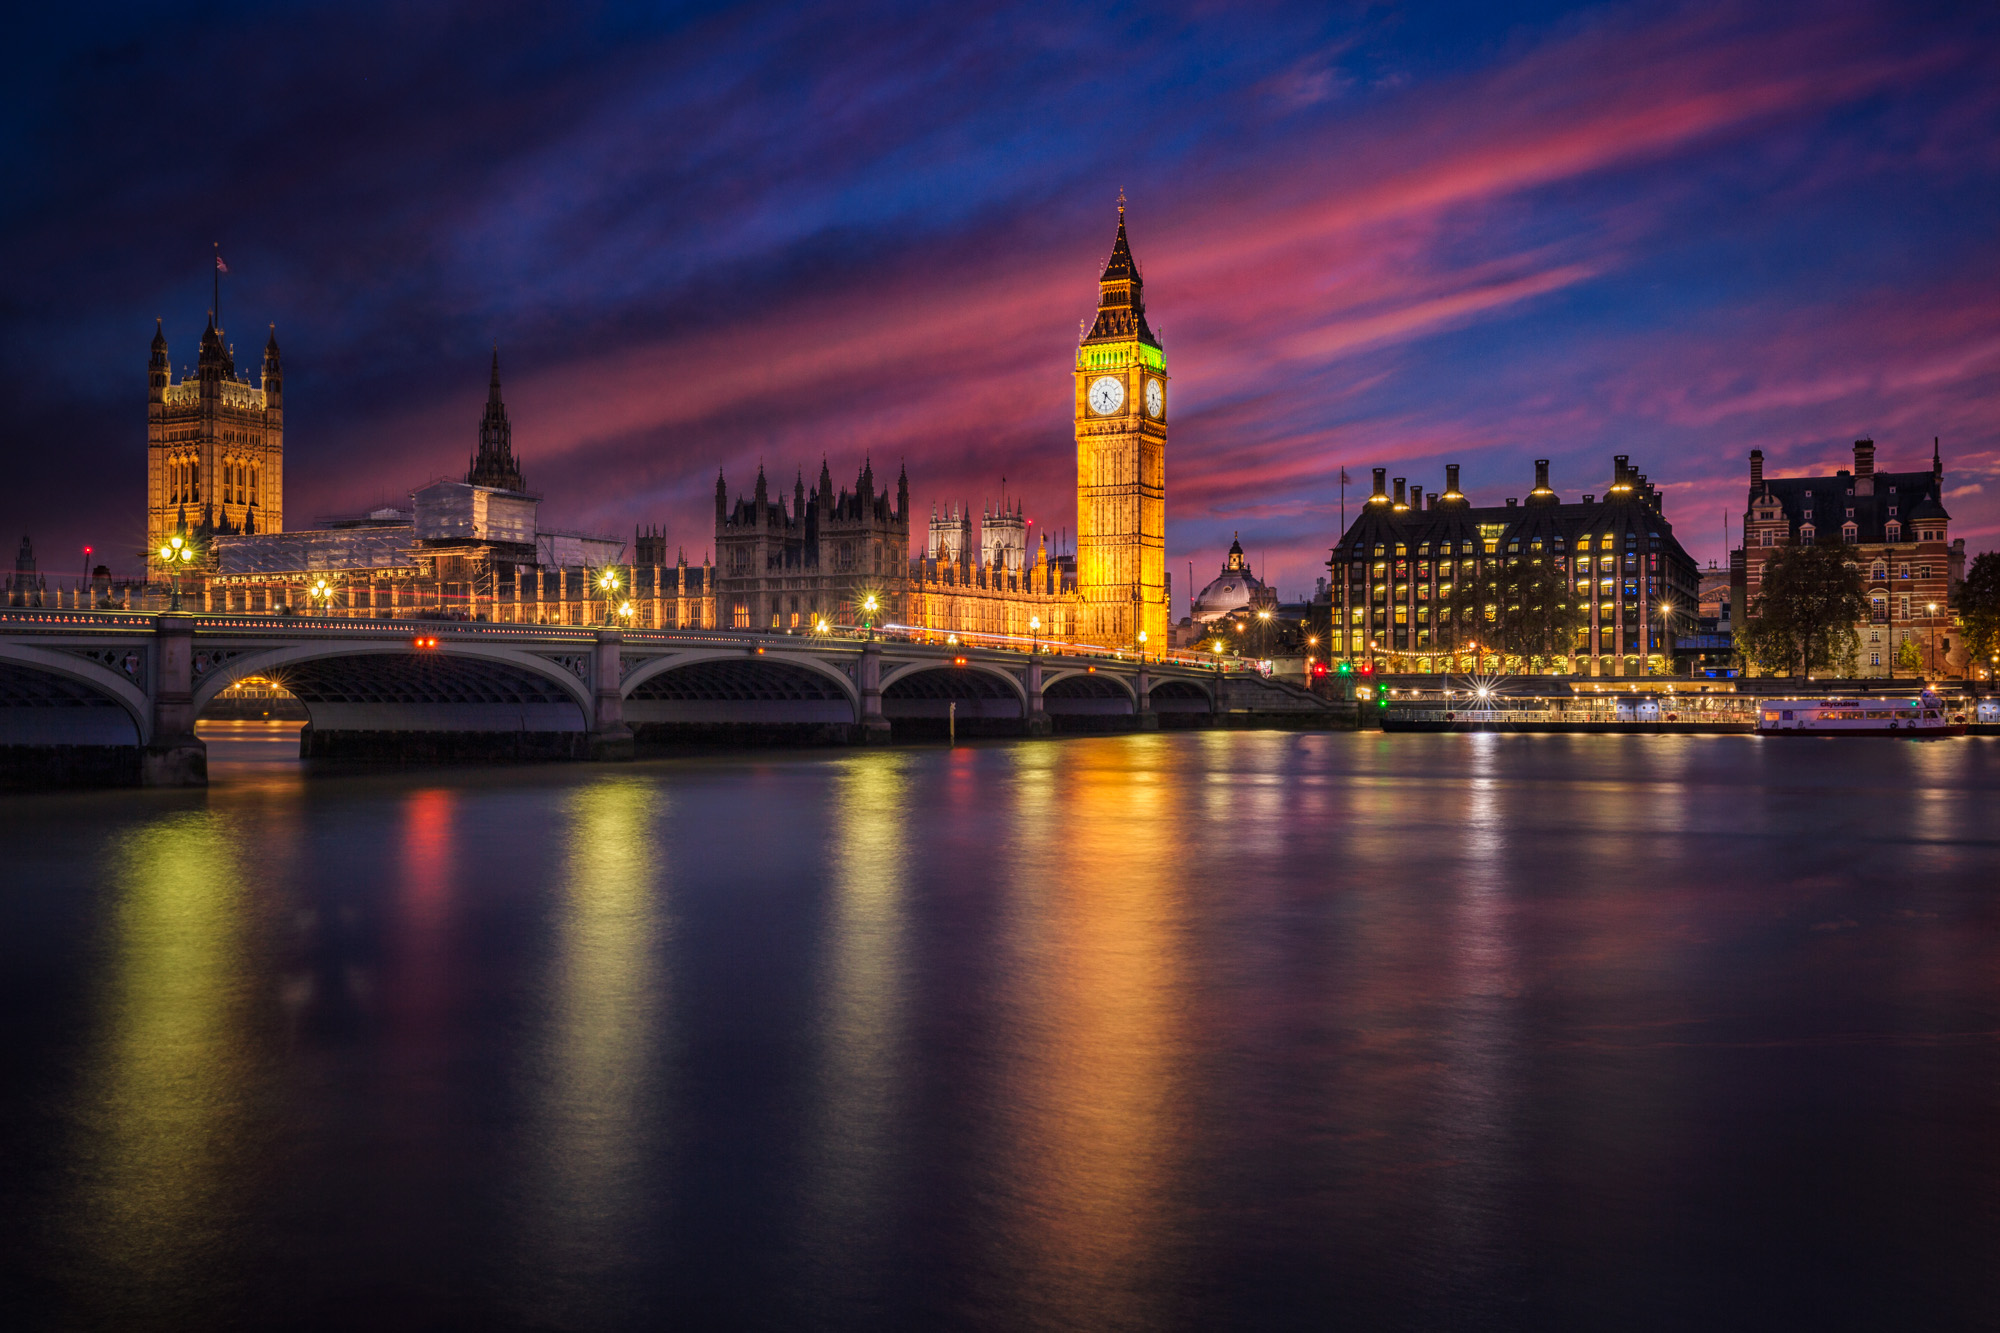 long exposure night photography of Big Ben Eliabeth Clock tower and parliament Westminster Palace in London UK at sunset